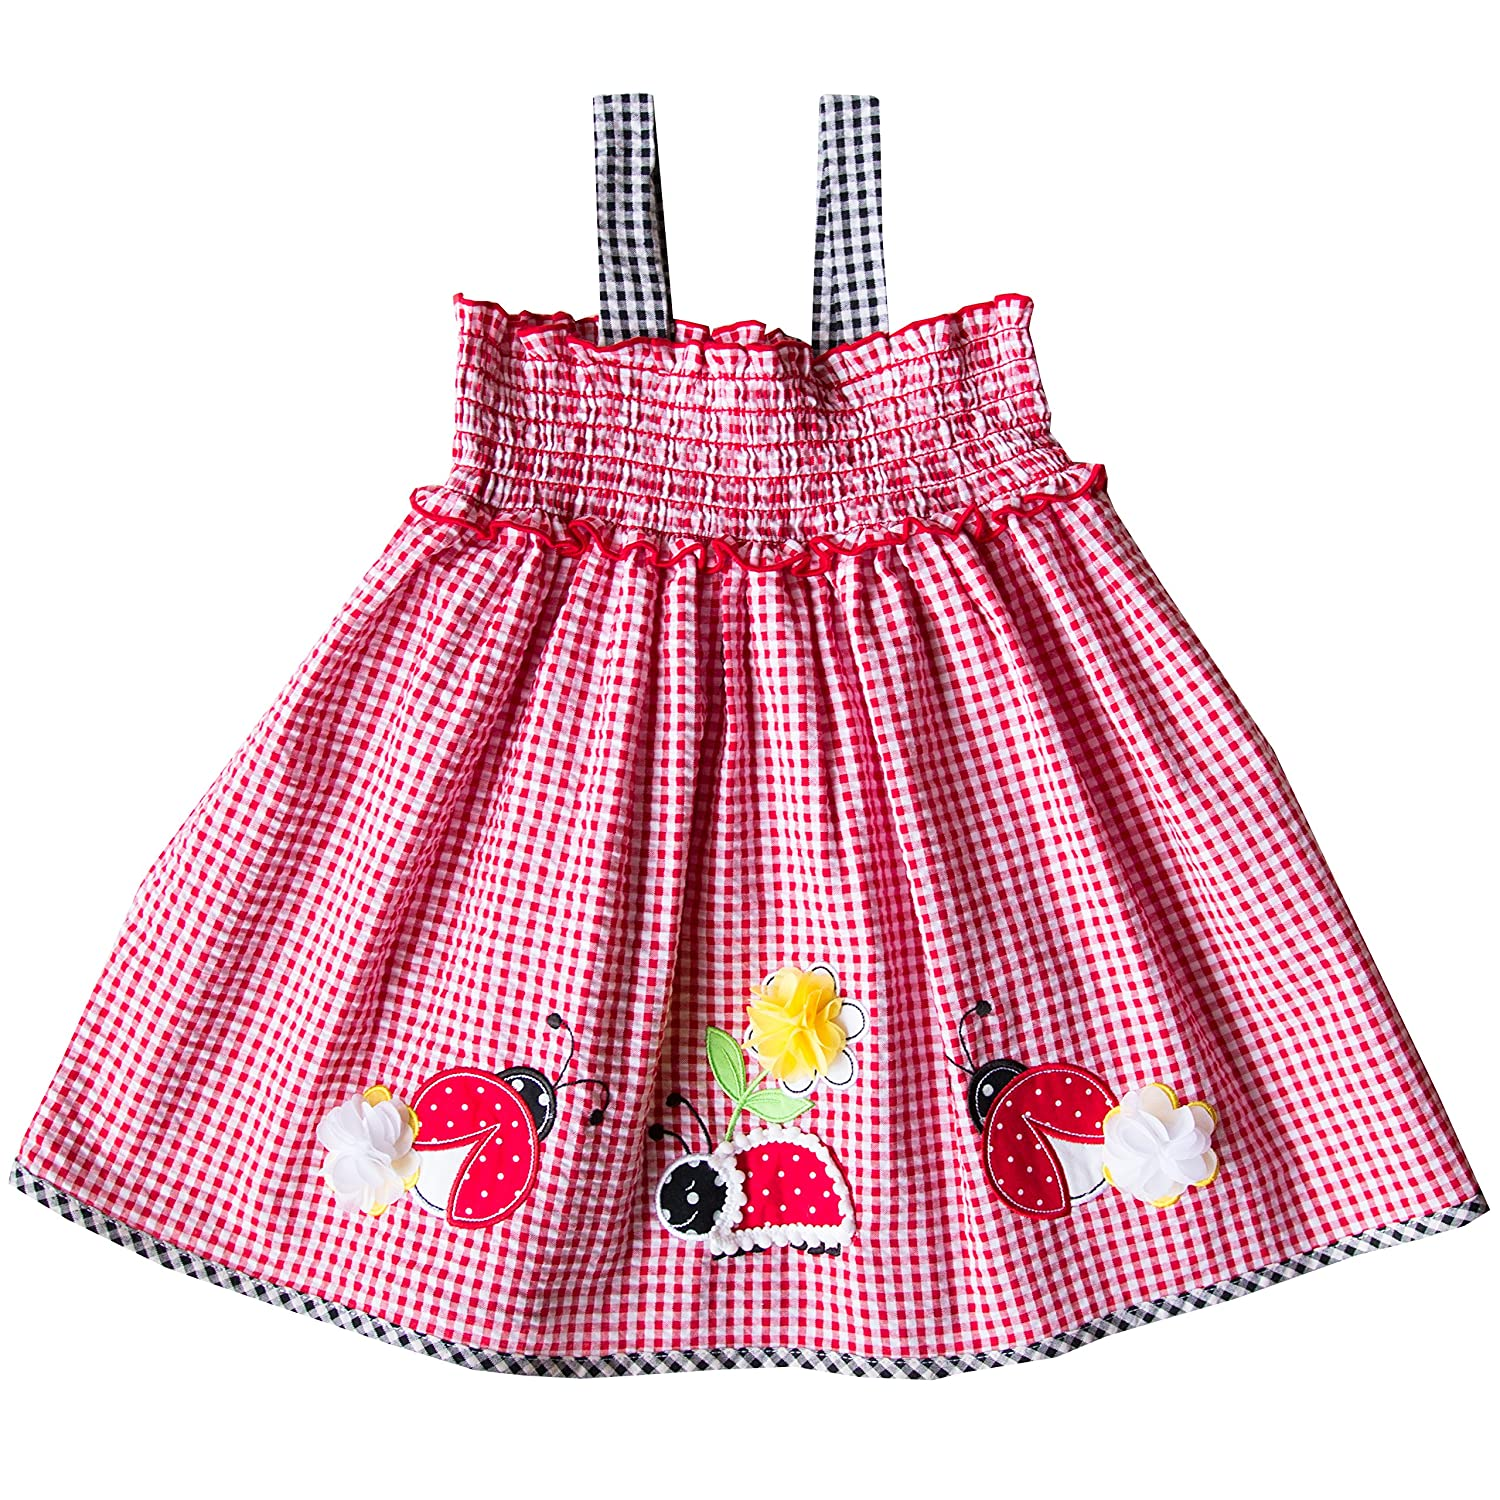 bdee9fc9201 Amazon.com  Good Lad Apparel 2 6x Girls Red Seersucker Sundress with Lady  Bug Applique  Clothing